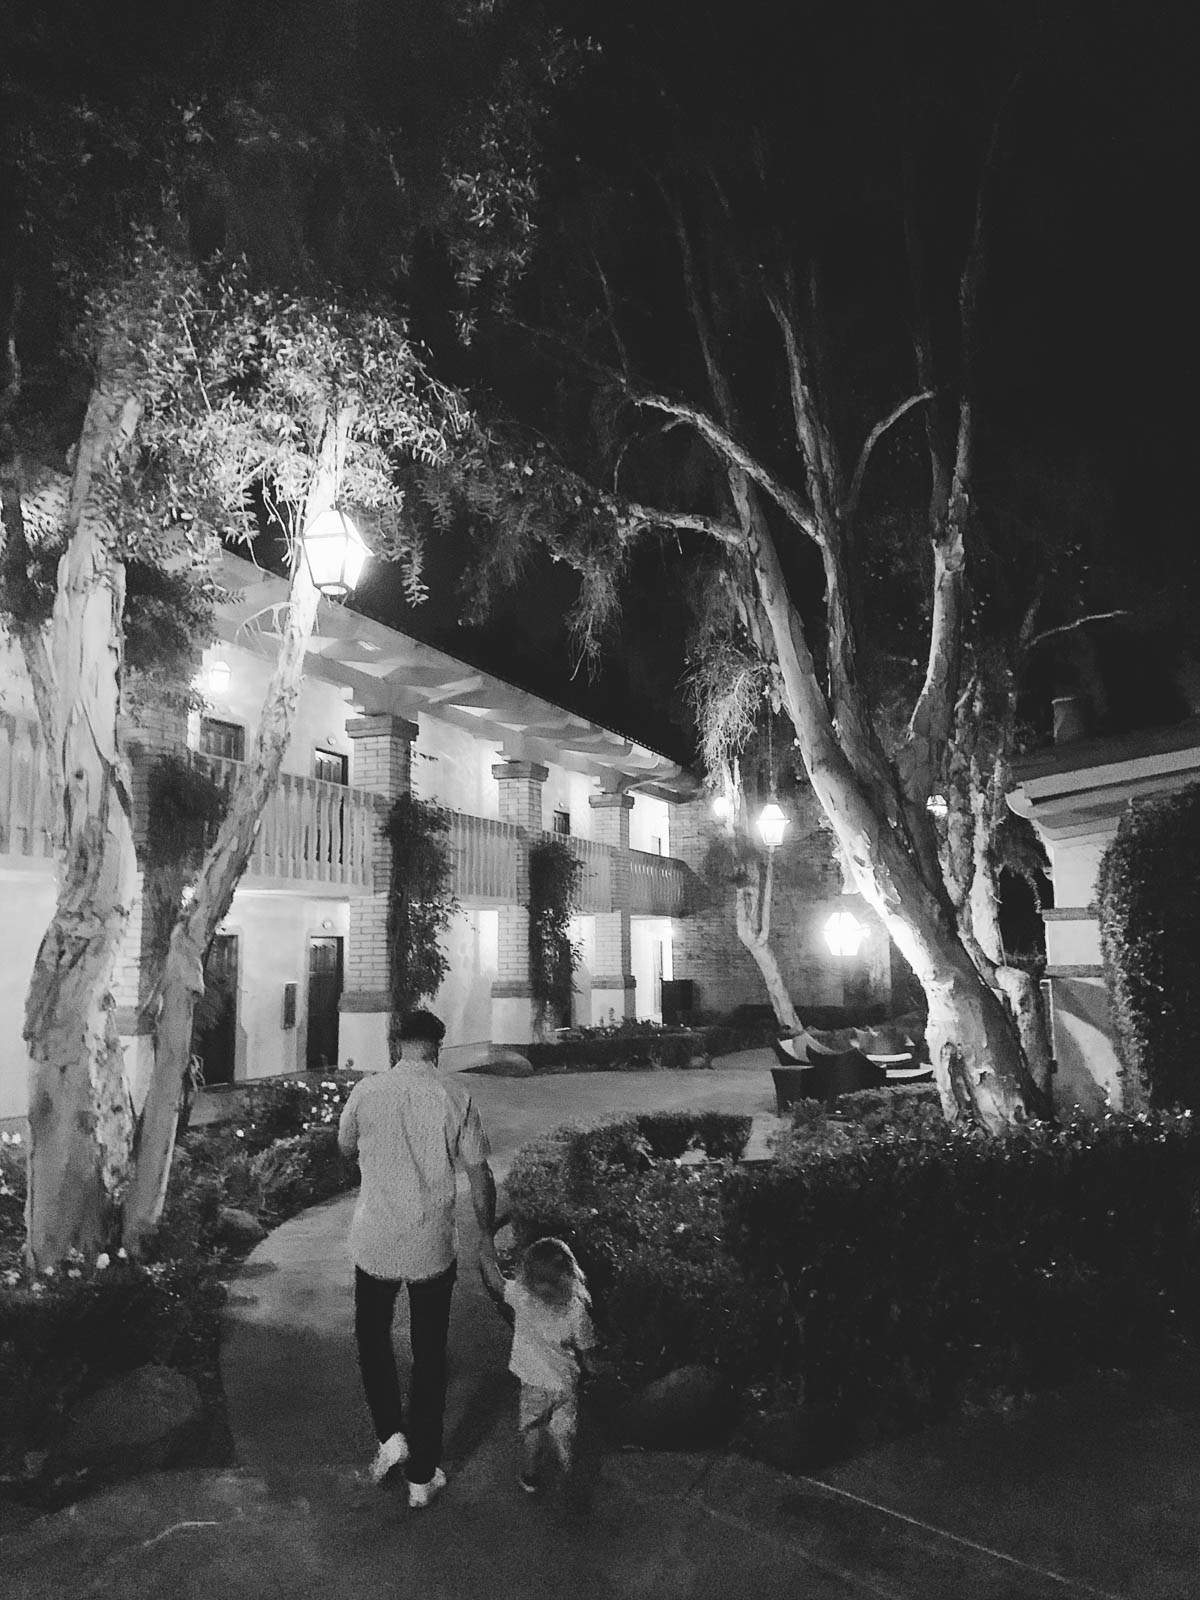 eatsleepwear goes on a family trip with toddler to Rancho Bernardo Inn showing father and son walking at night